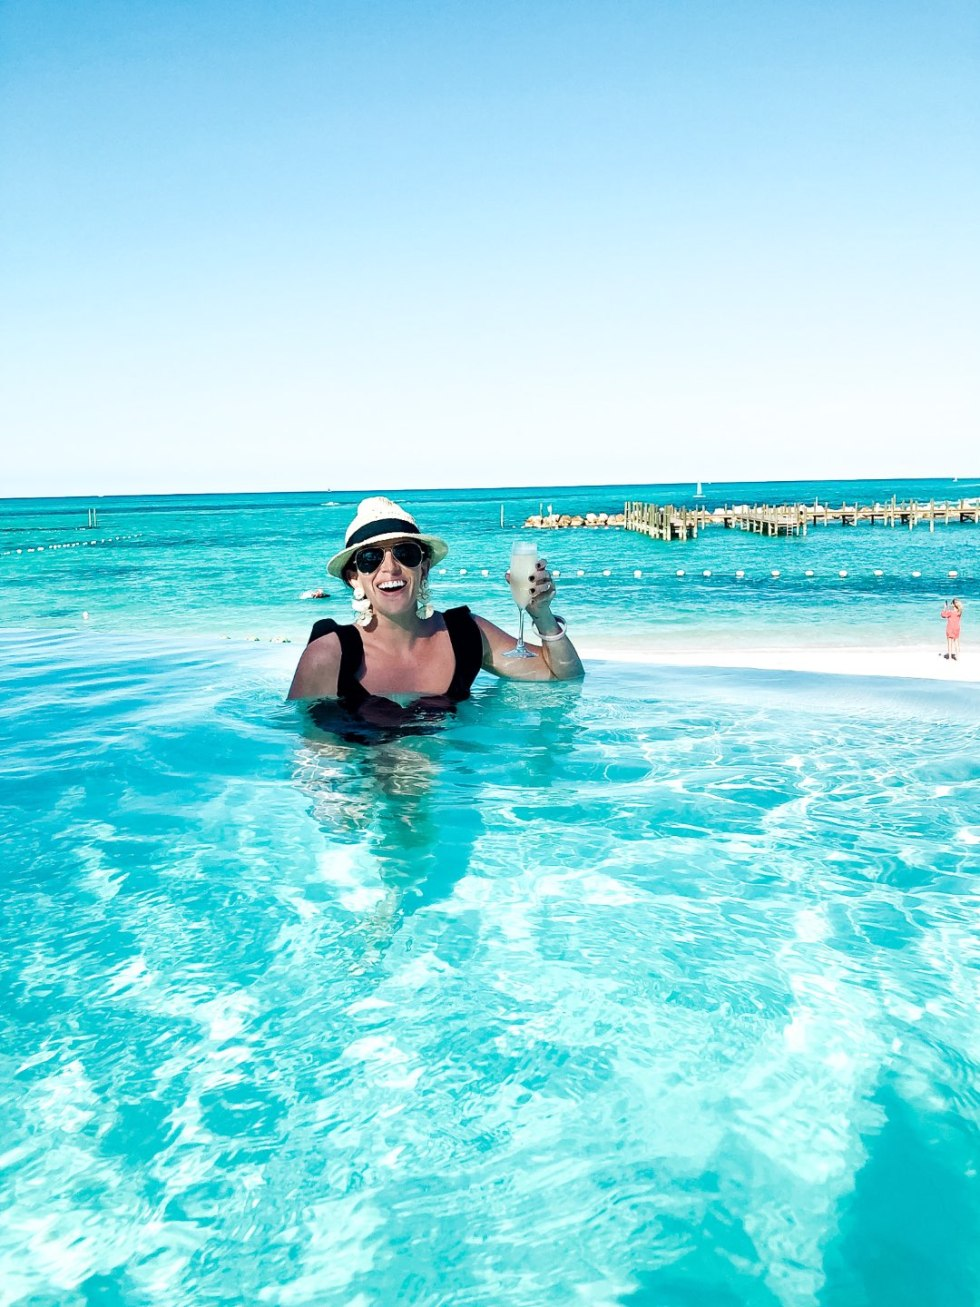 Warming Up in the Bahamas: the Best Things to Do at Baha Mar - I'm Fixin' To - @mbg0112 | Warming Up in the Bahamas: the Best Things to Do in Baha Mar by popular North Carolina travel blog, I'm Fixin' To: image of a woman in a an infinity pool.